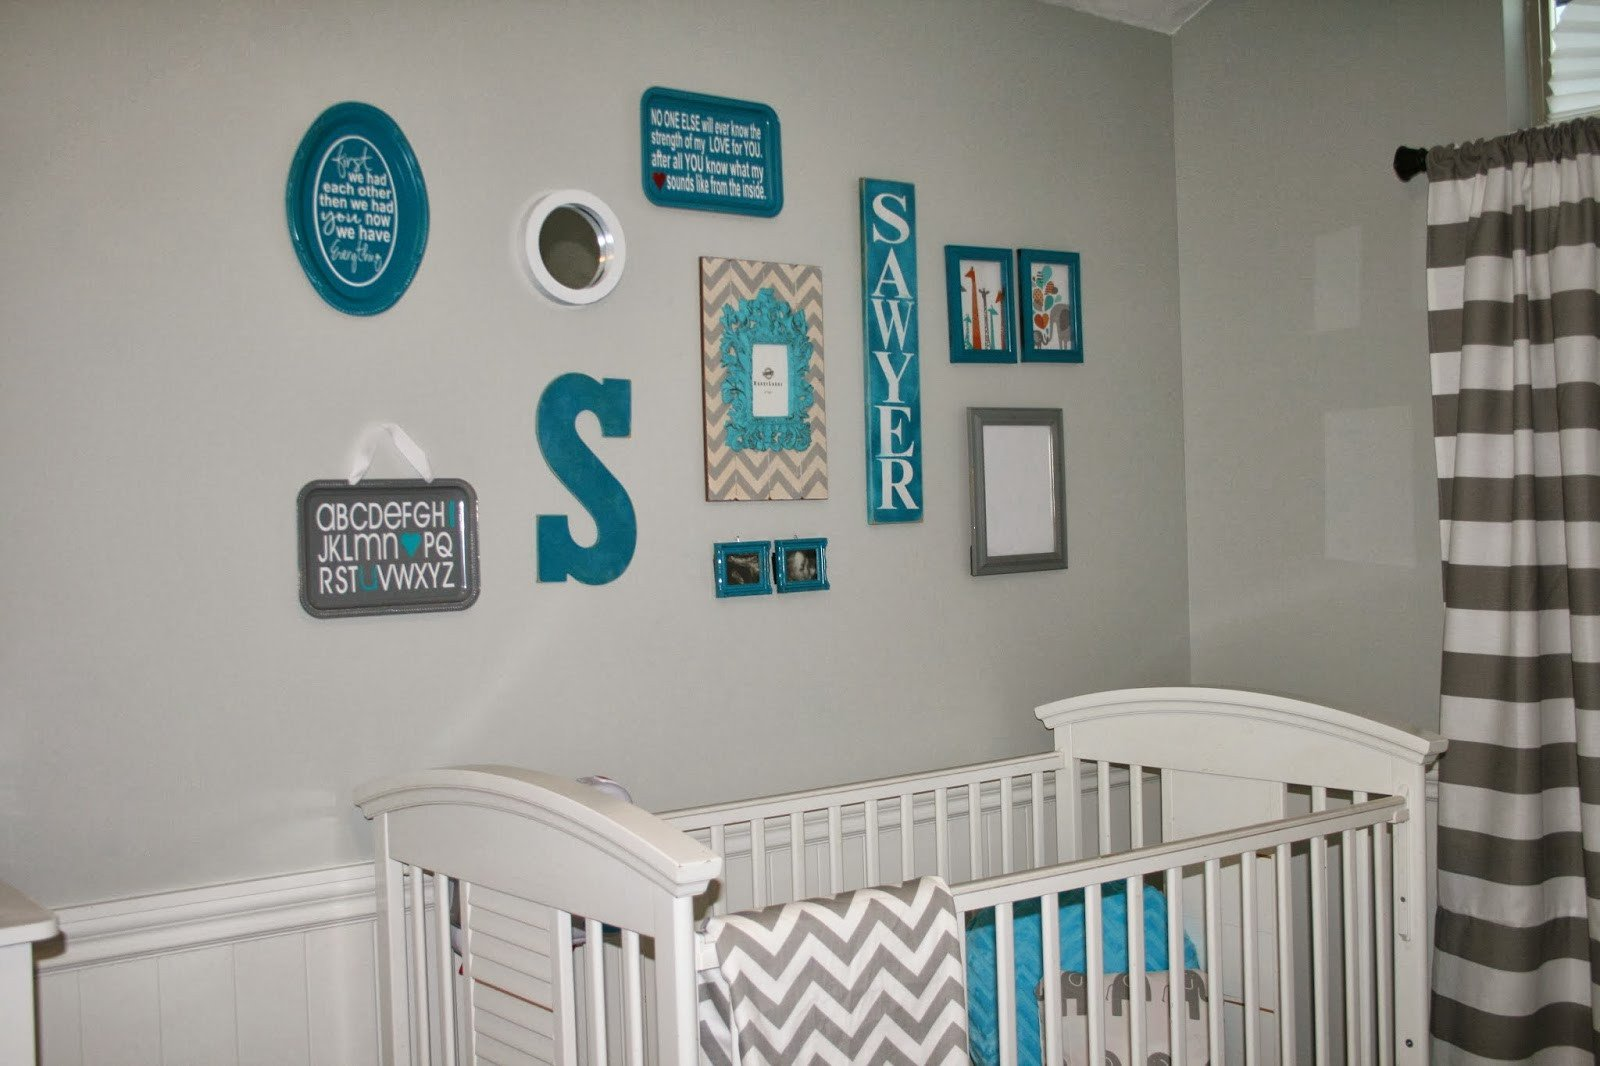 Wall Decor for Baby Rooms Fresh Creative Juices Baby Room Decor and Collage Wall